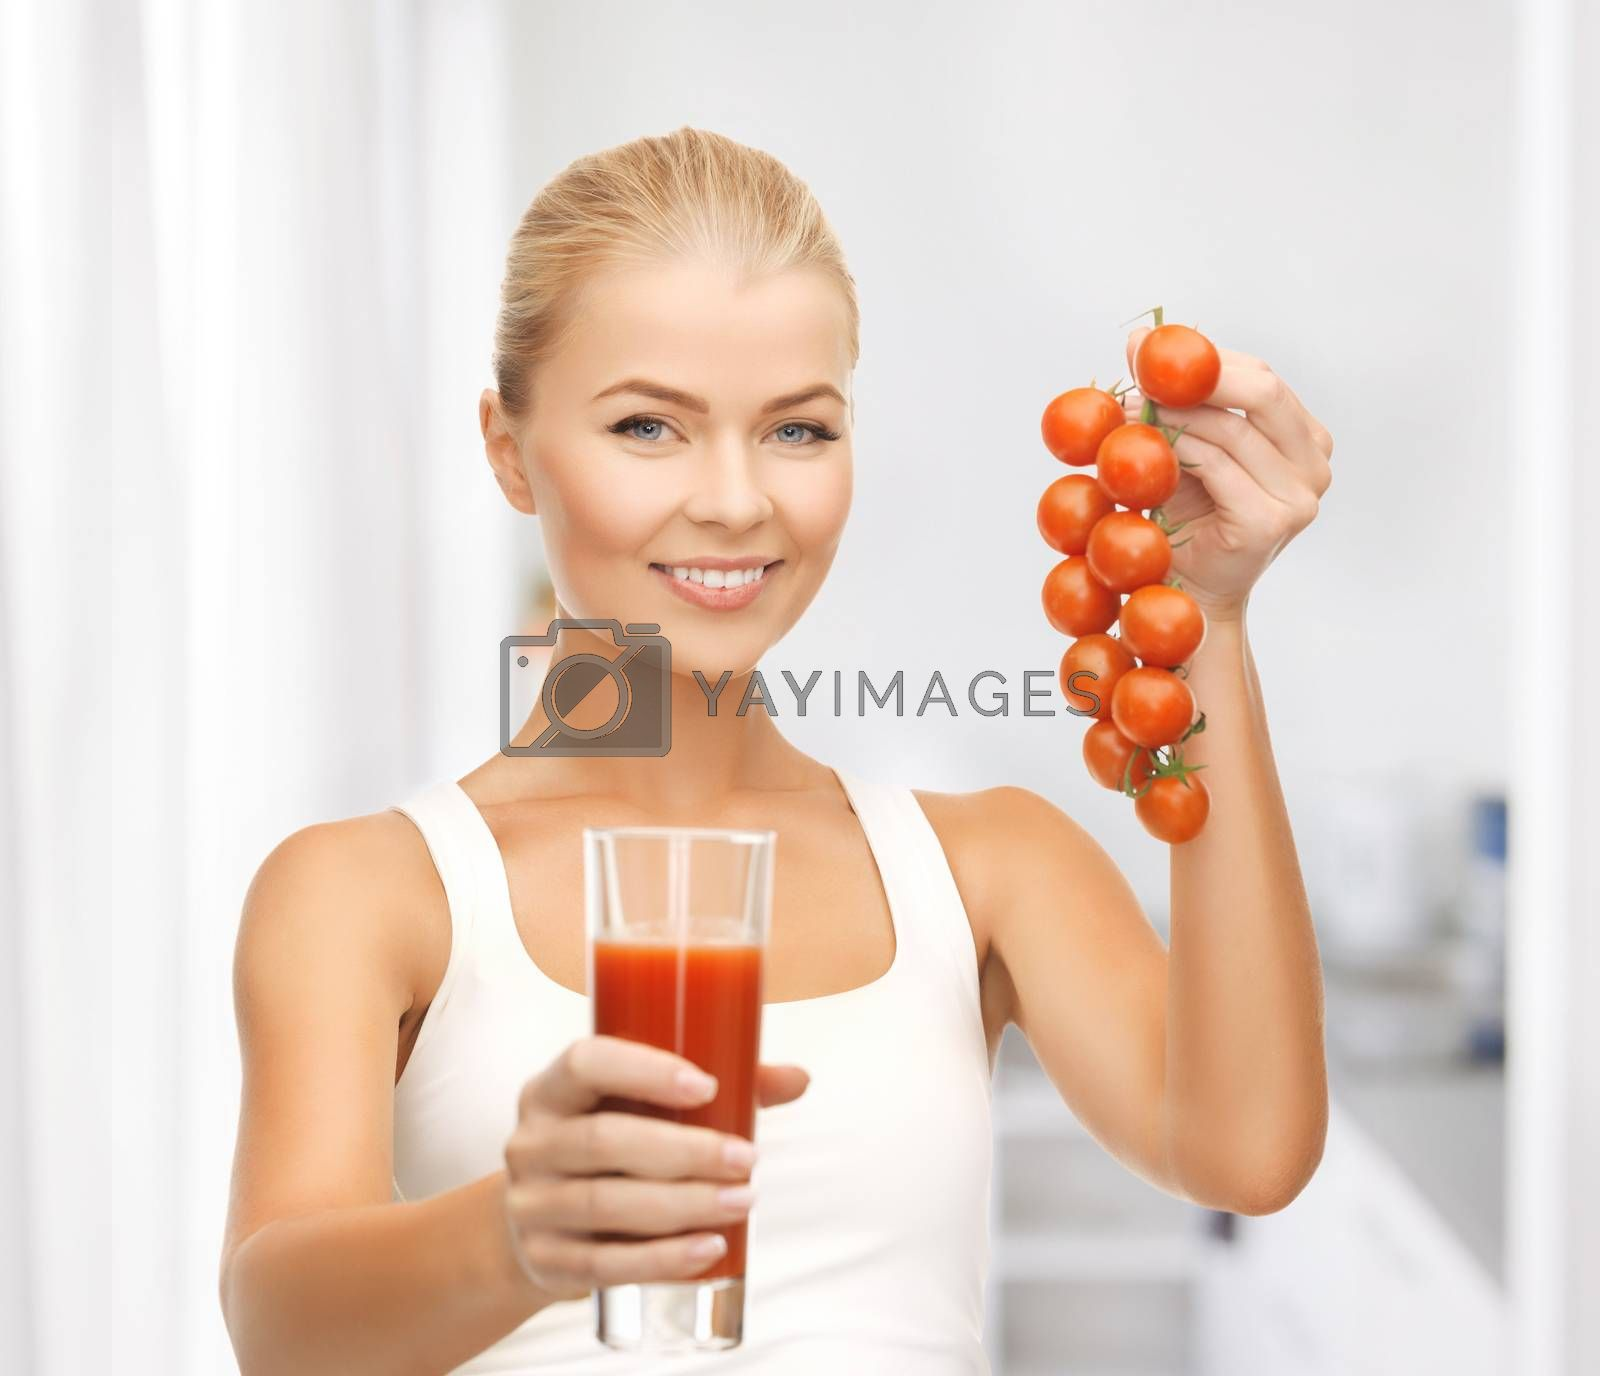 woman holding glass of juice and tomatoes by dolgachov